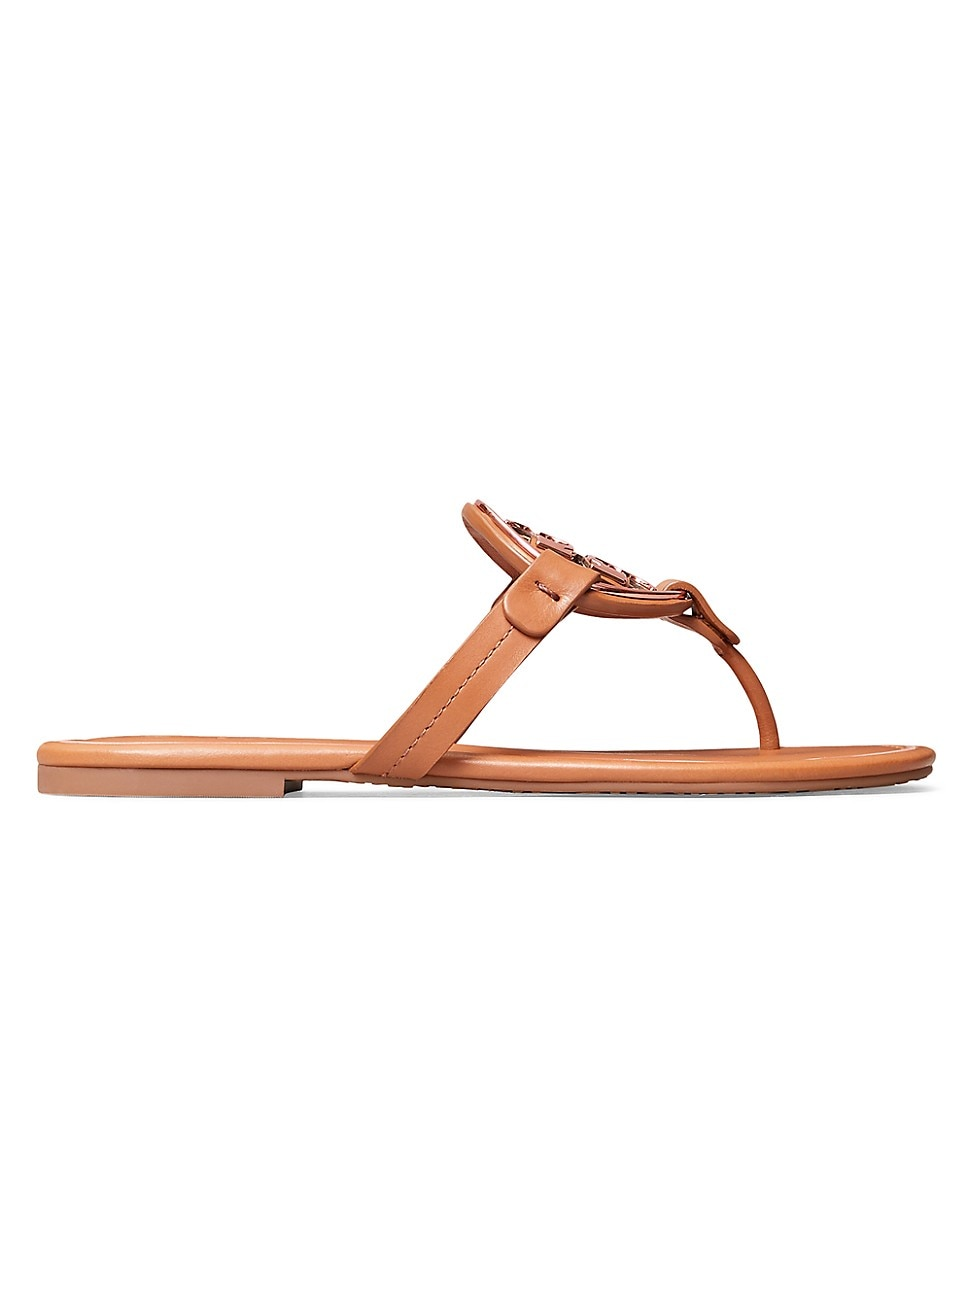 Tory Burch Leathers WOMEN'S MILLER METAL LEATHER THONG SANDALS